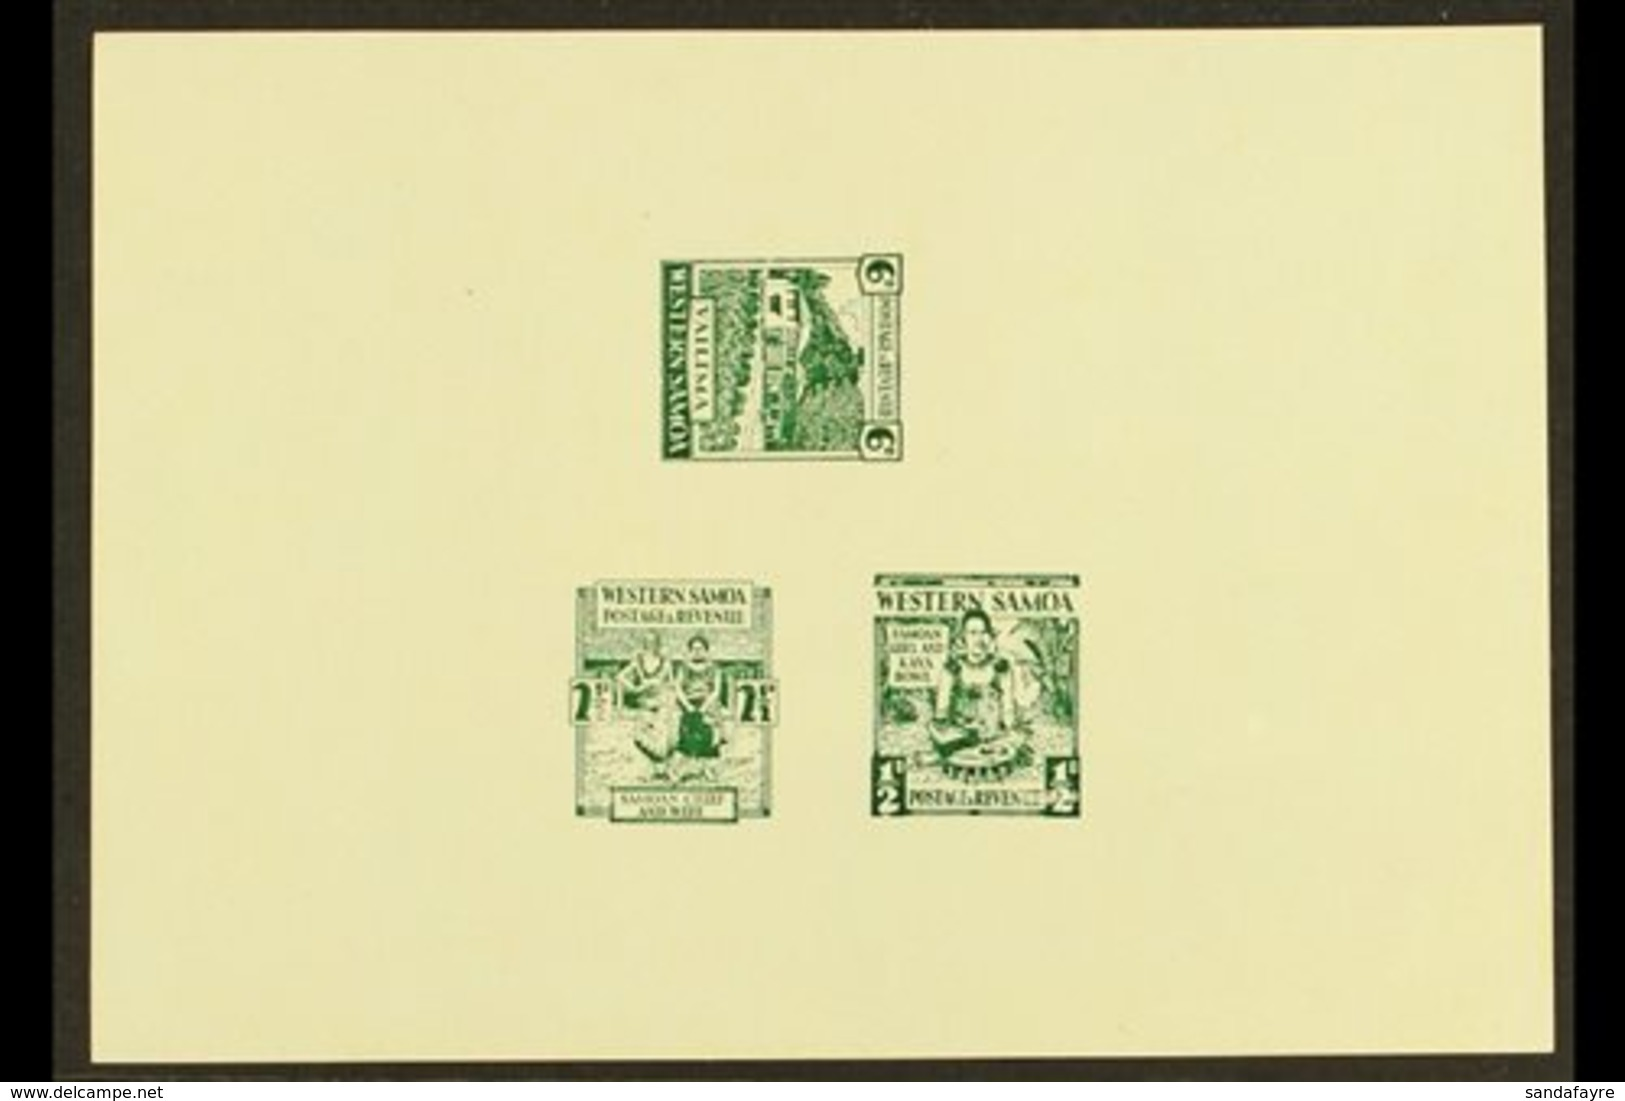 1935 PICTORIAL DEFINITIVE ESSAYS Collins Essays For The ½d, 2½d And 6d Values, In Green On A Single Sheet Of Thick Gloss - Samoa